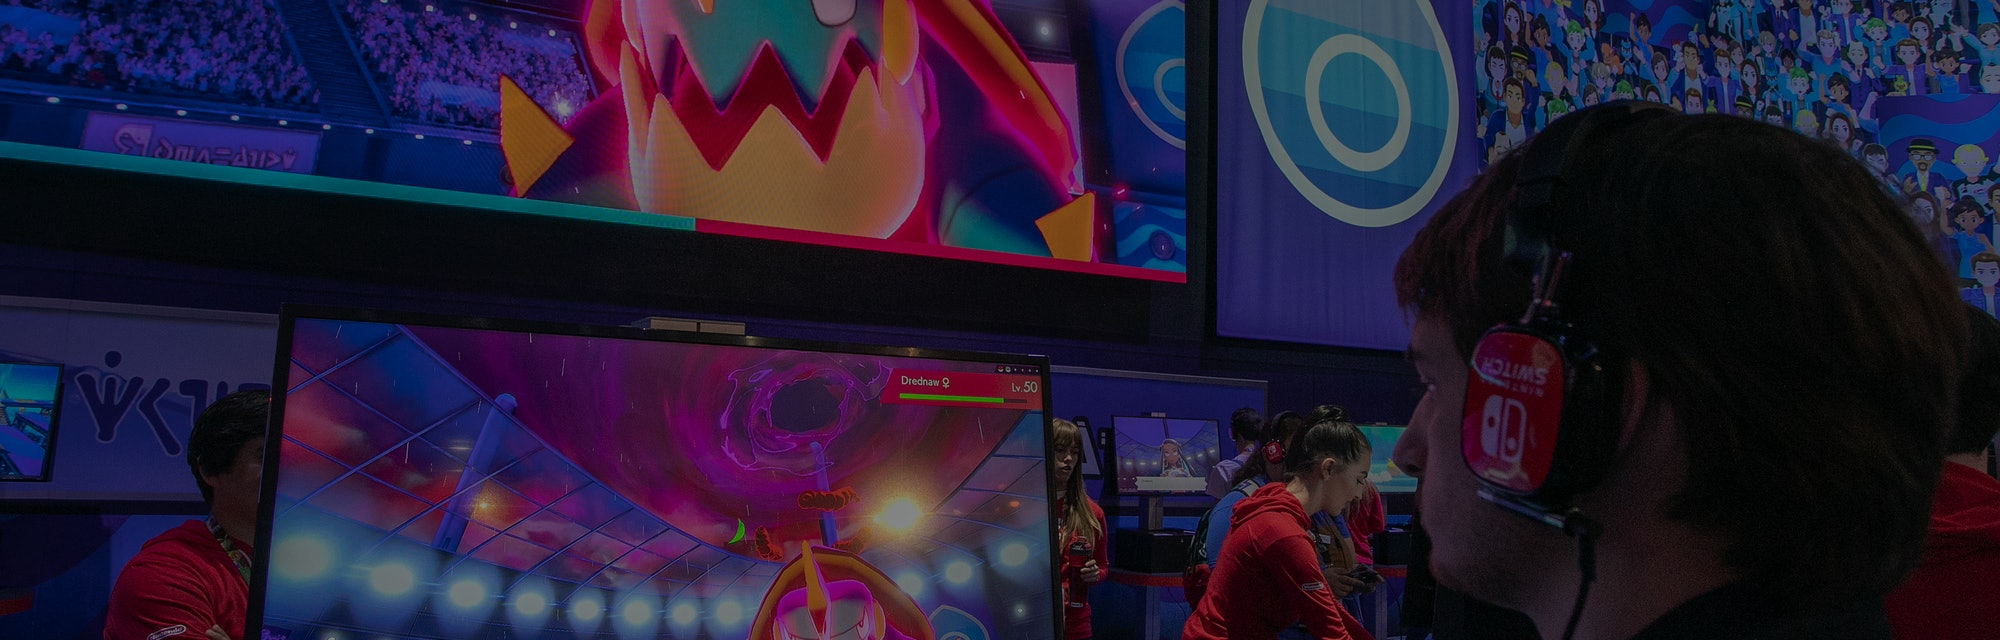 LOS ANGELES, CA - JUNE 12: A gamer plays Pokémon Sword and Pokémon Shield at E3 2019 at the Los Angeles Convention Center on June 12, 2019 in Los Angeles, California. The Electronic Entertainment Expo is billed as the largest gaming industry expo of the year.  (Photo by David McNew/Getty Images)